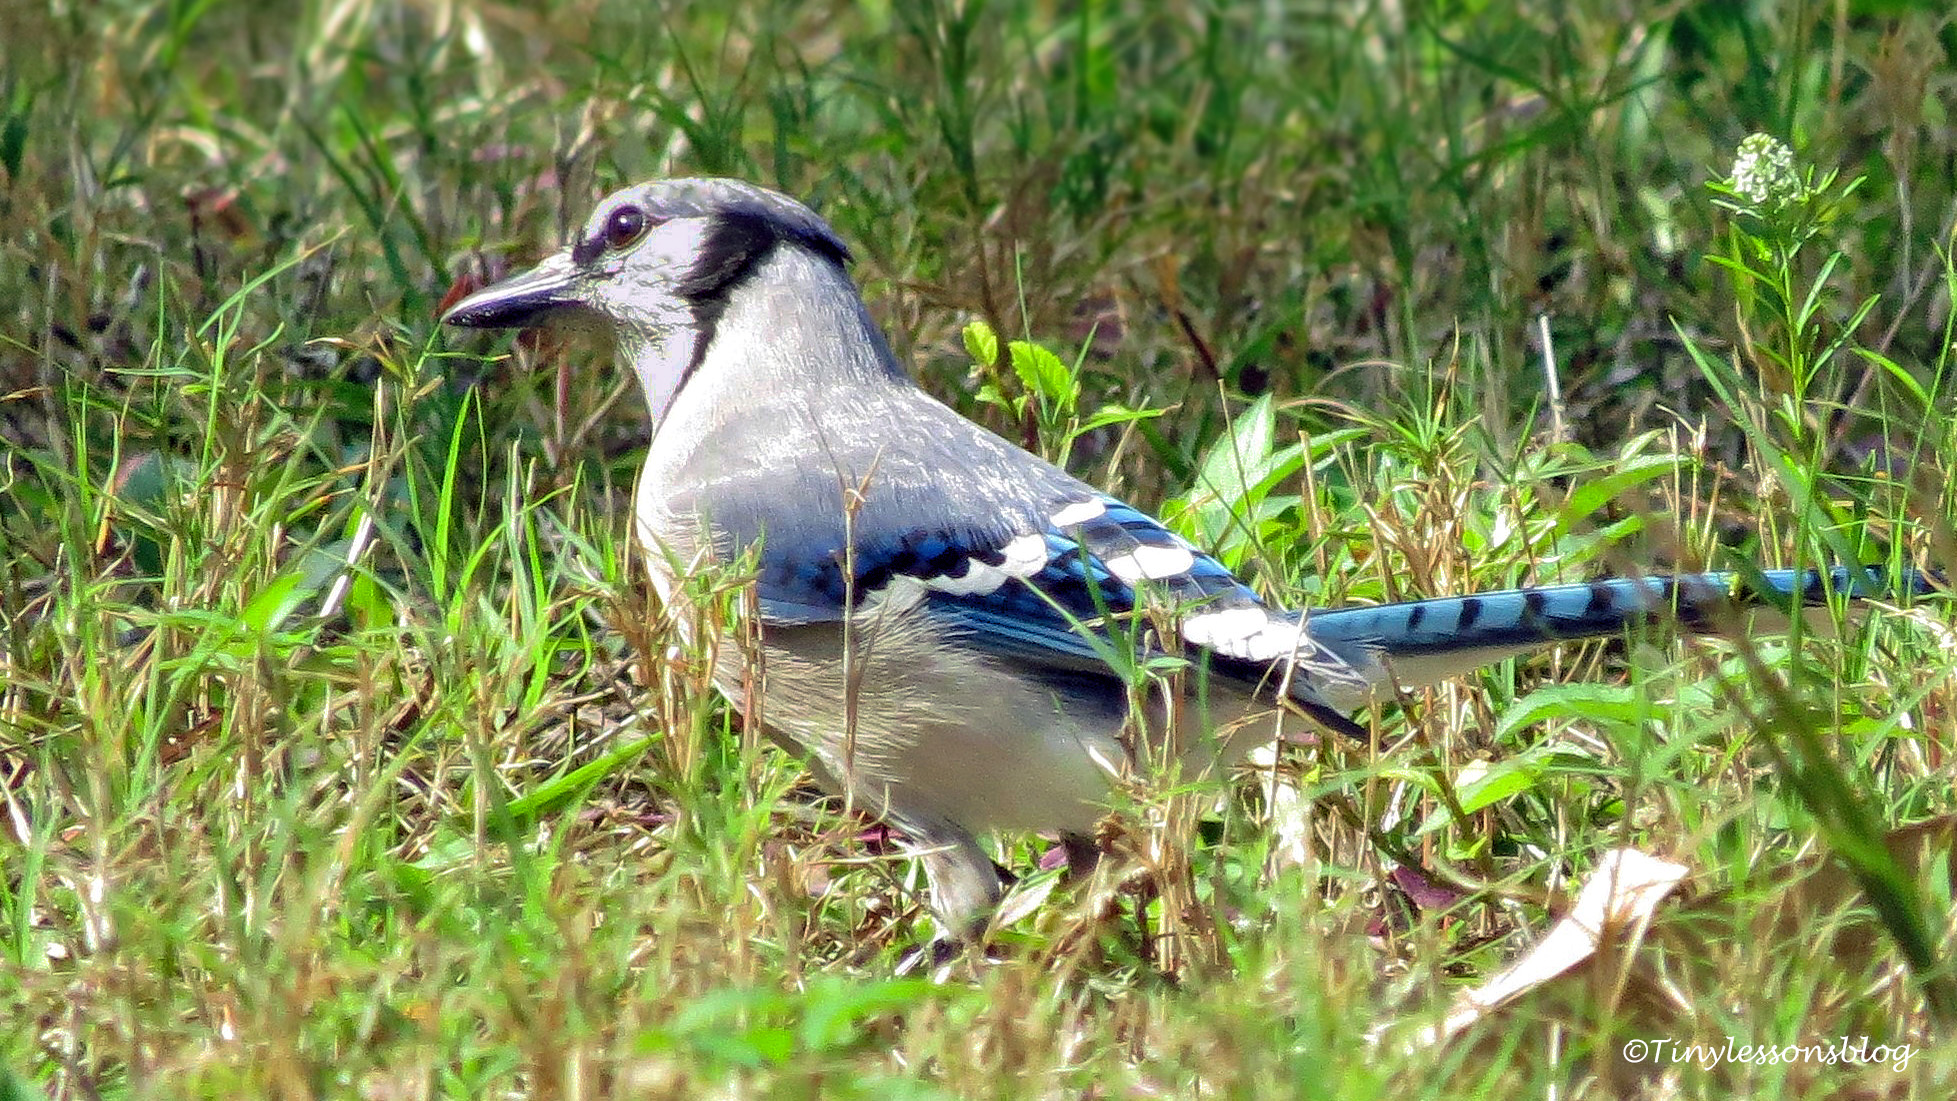 Blue jay in the grass UD157